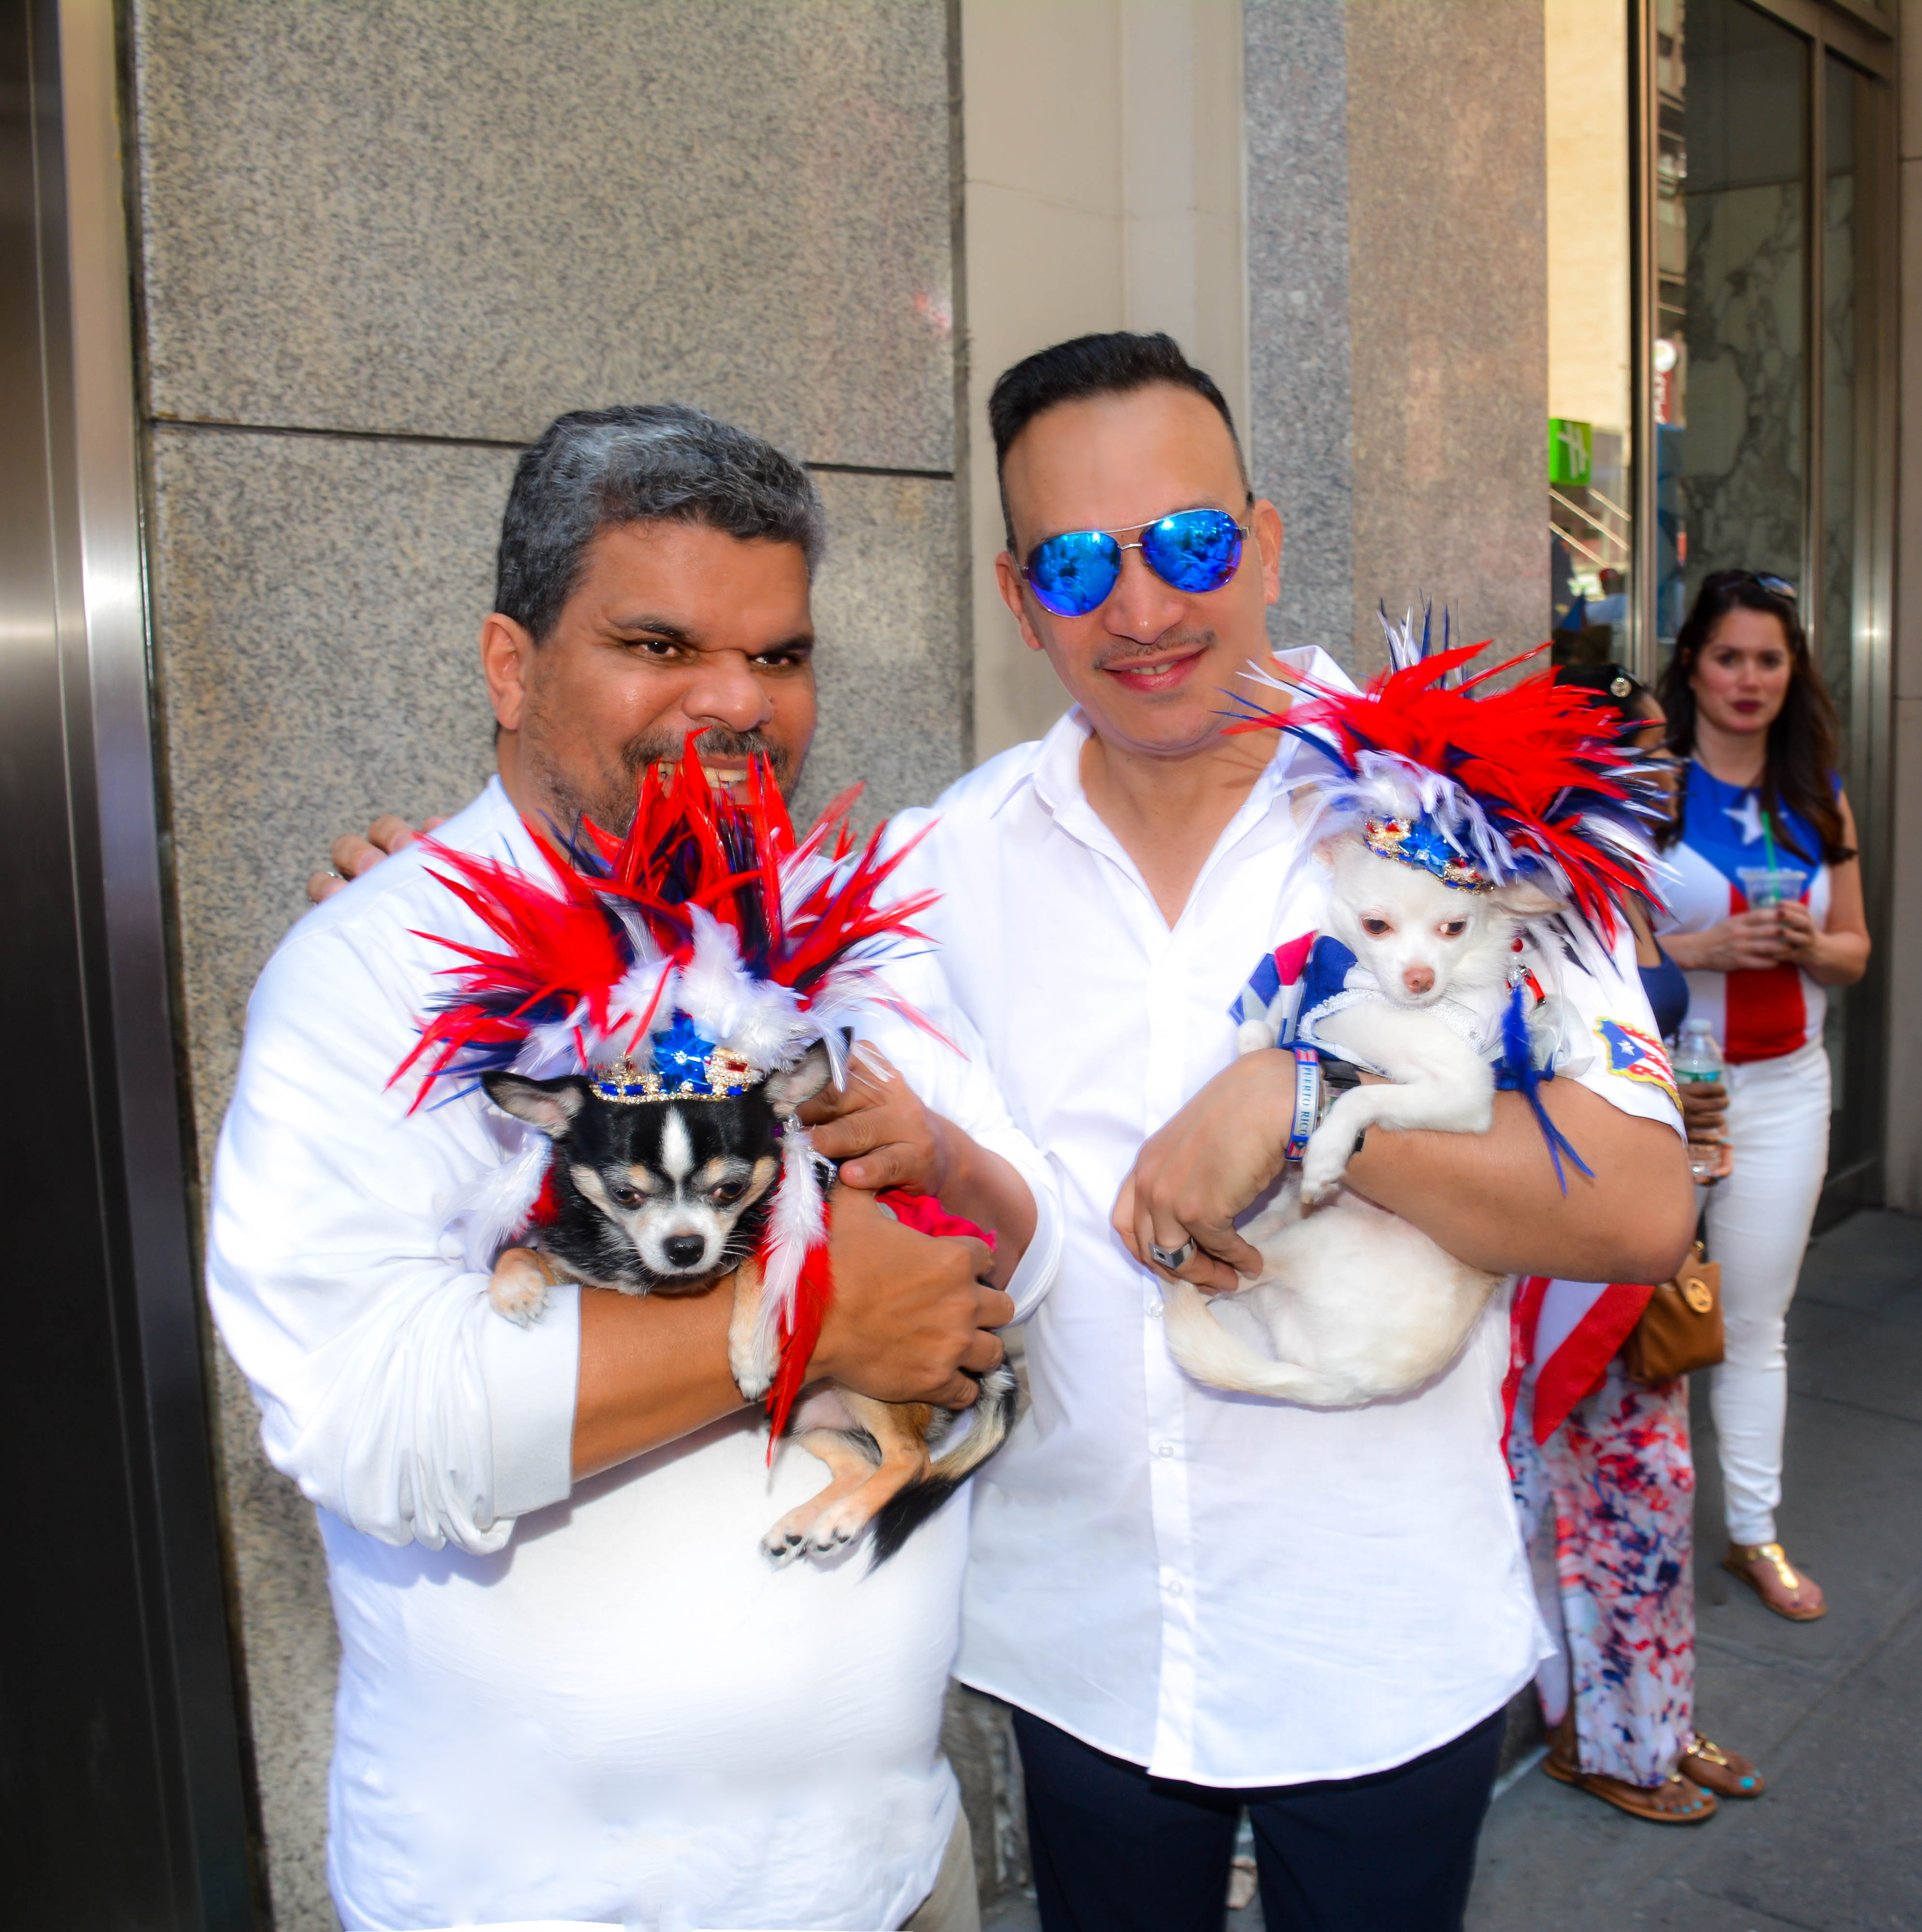 Puerto Rican Day Parade Anthony Rubio Designs Dog Fashion